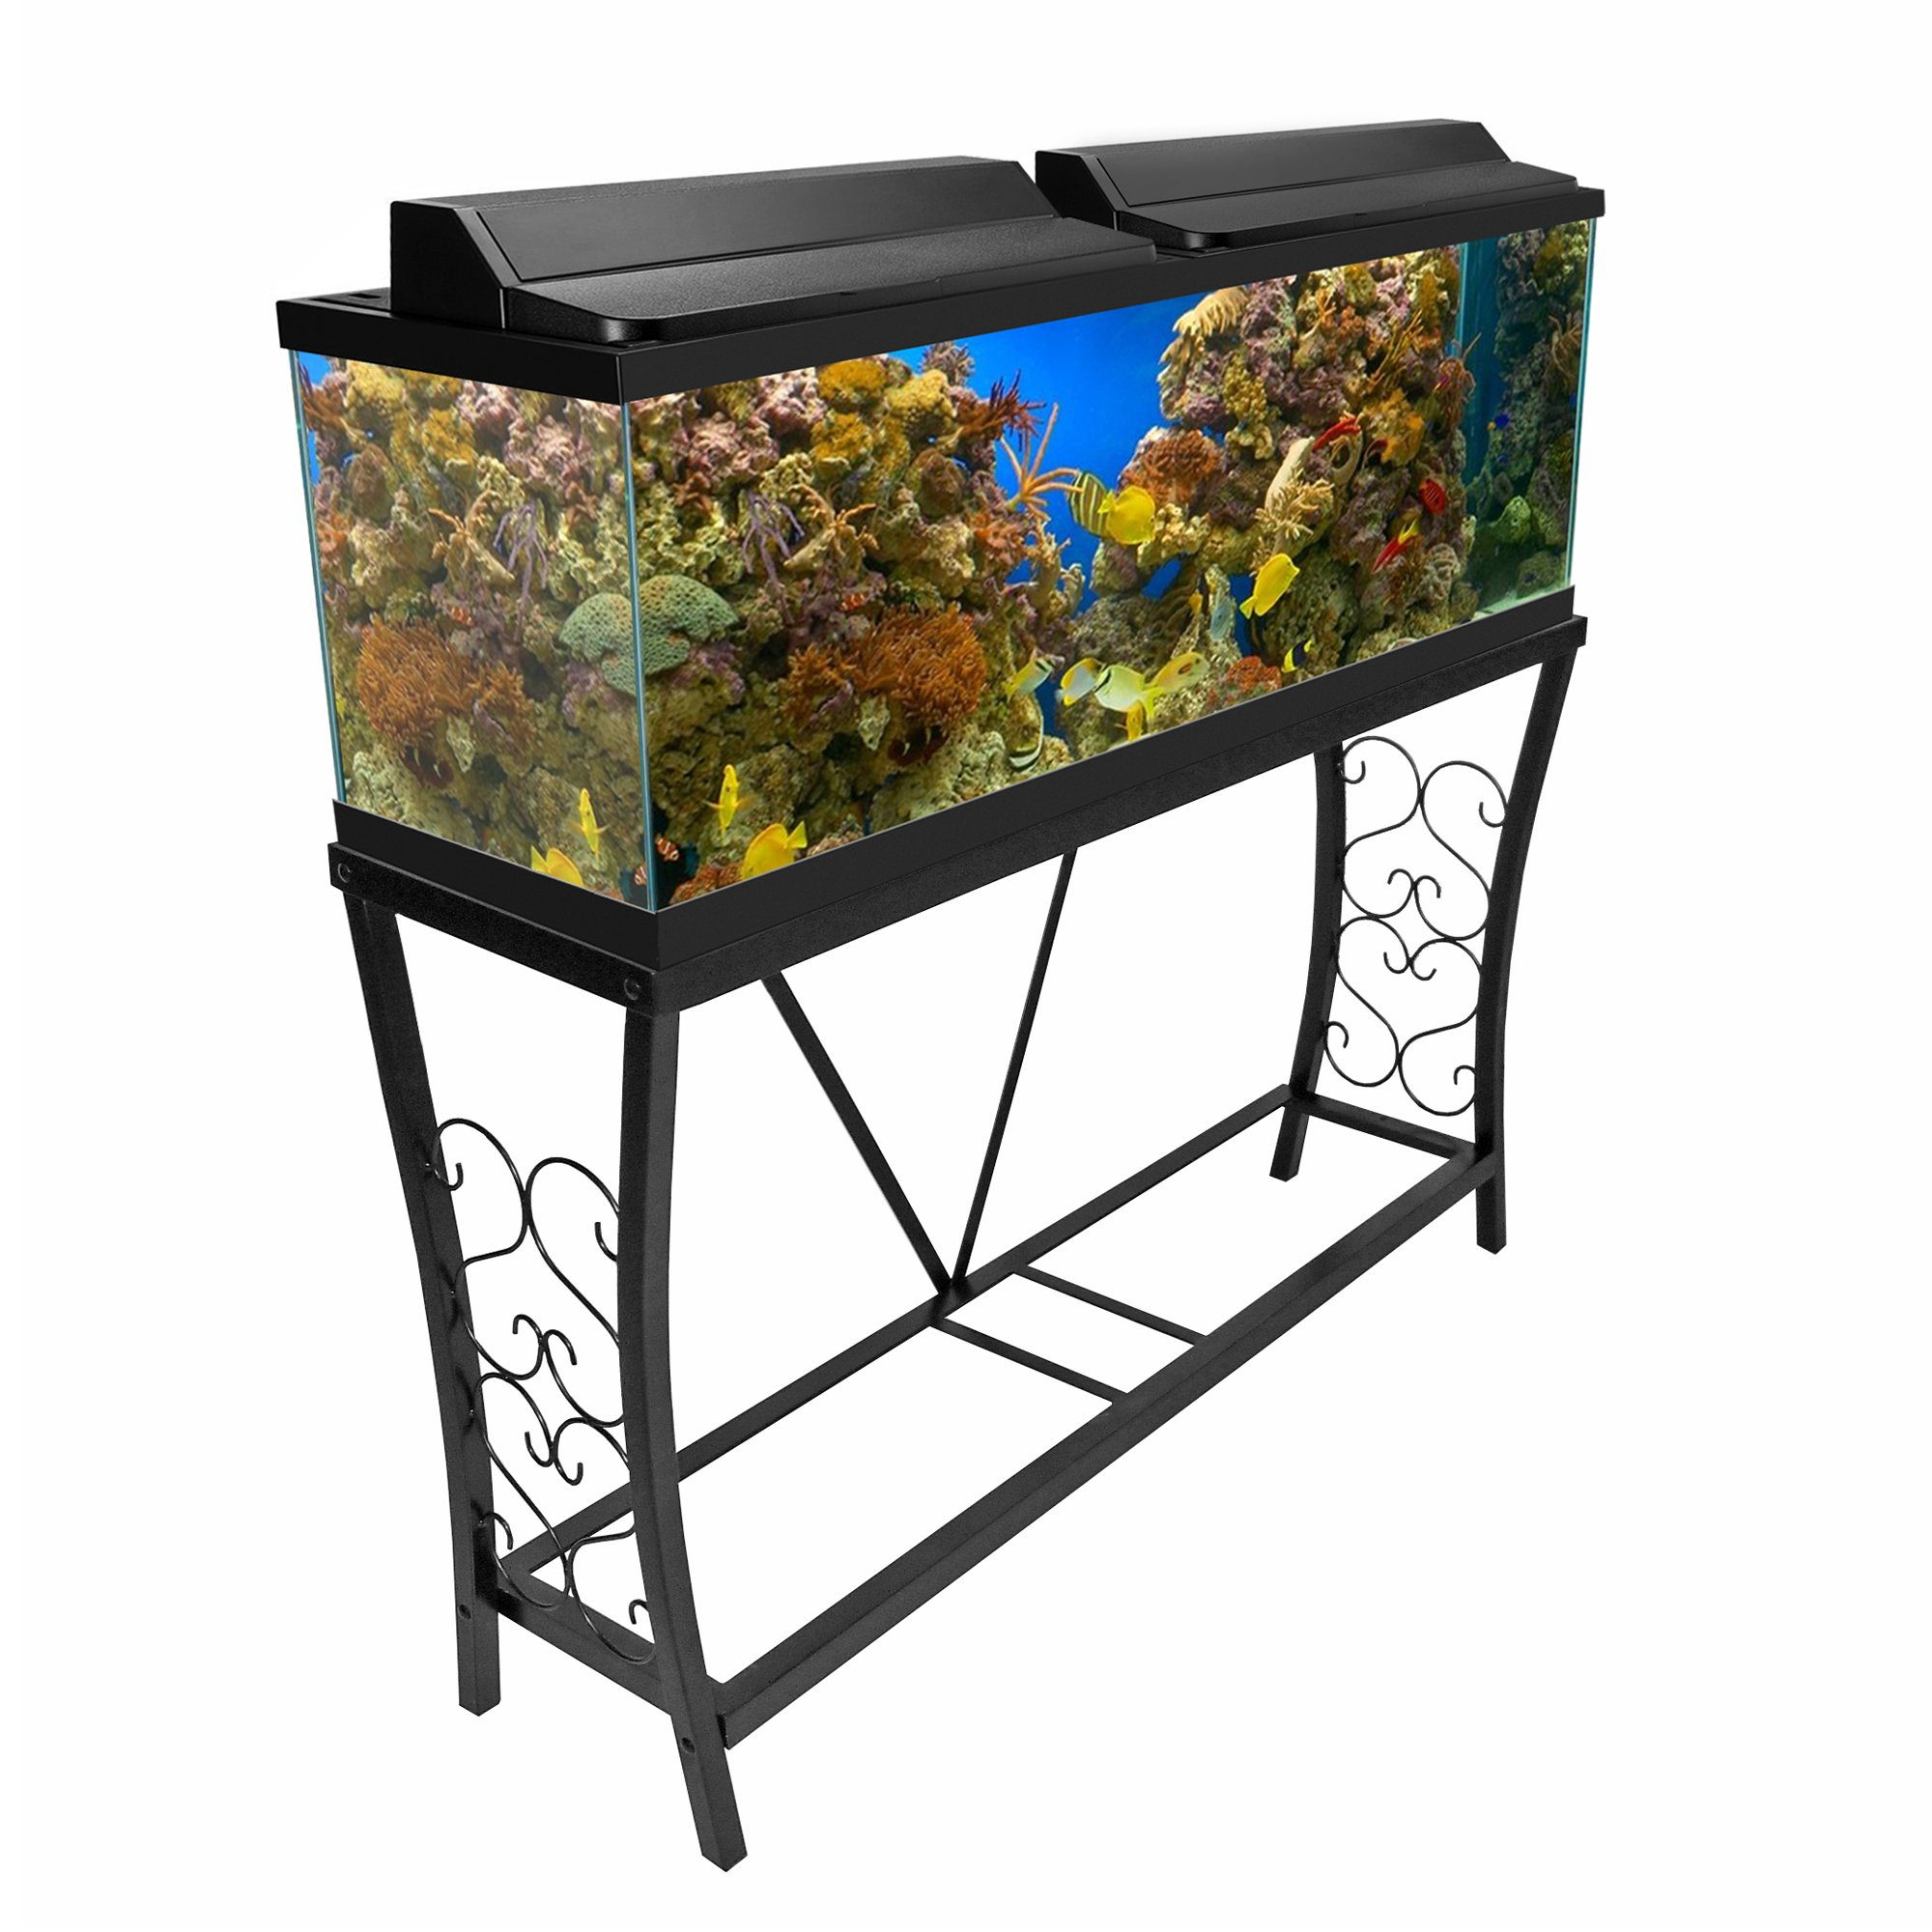 Aquatic fundamentals black scroll aquarium stand 55 for 55 gal fish tank stand